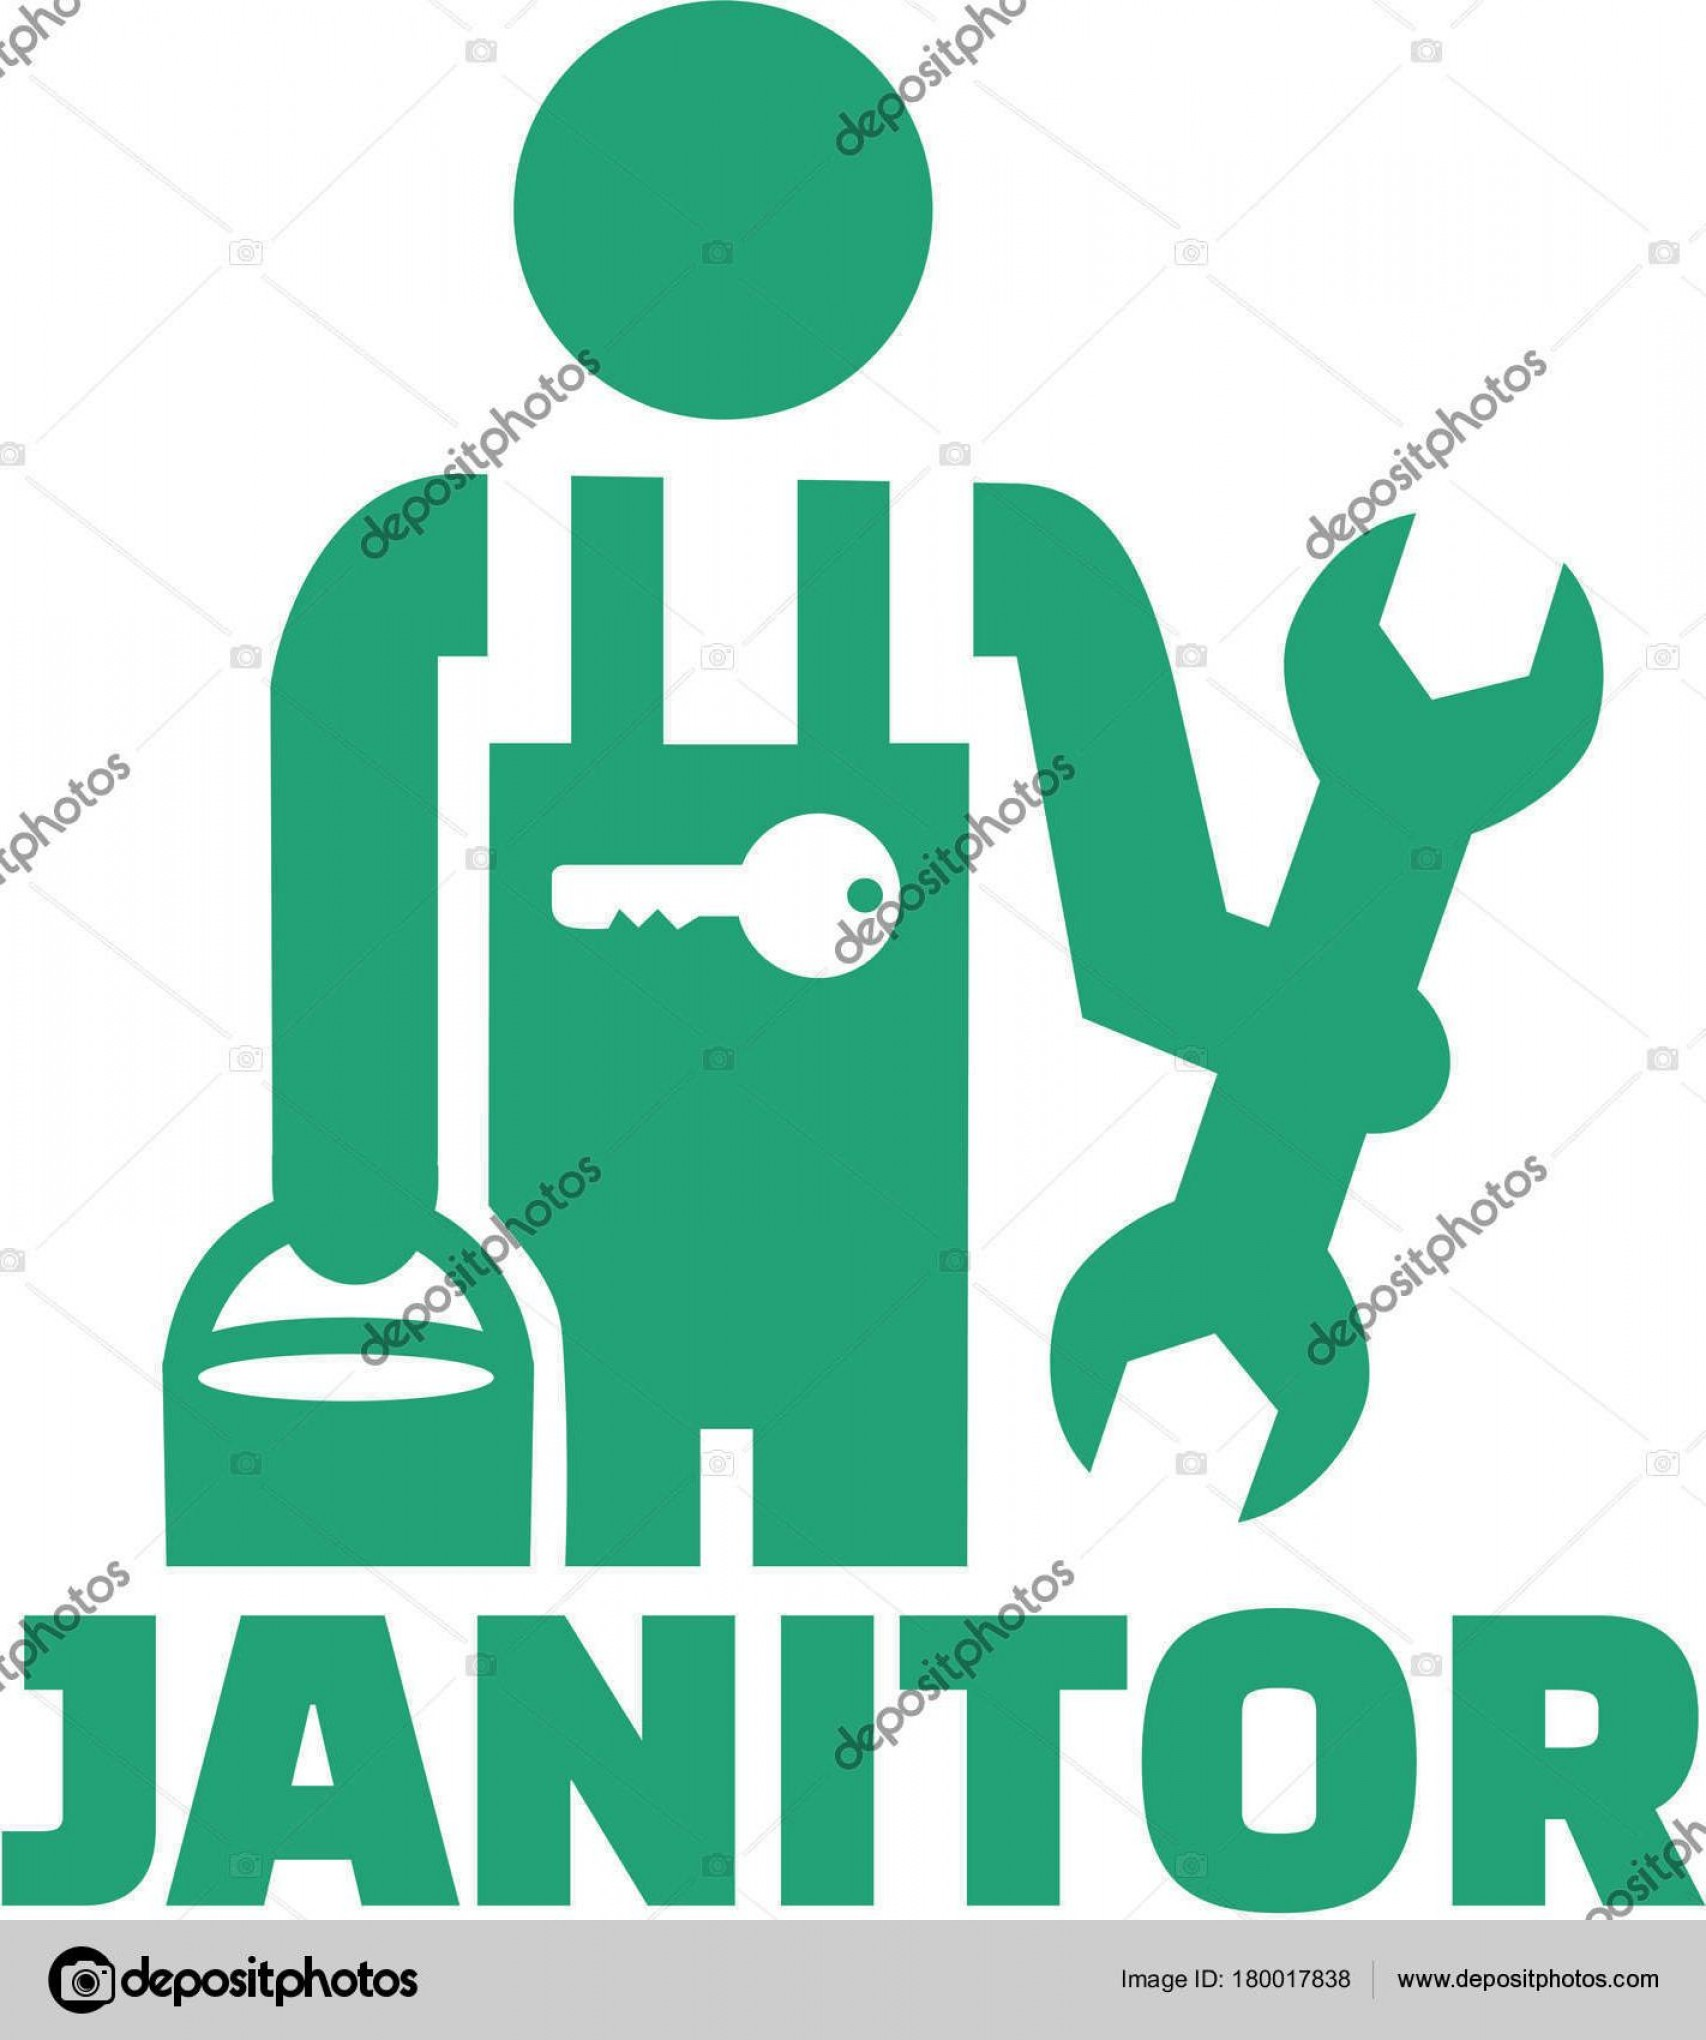 Janitorial Vector: Best Free Janitor In A Factory Vector Pictures